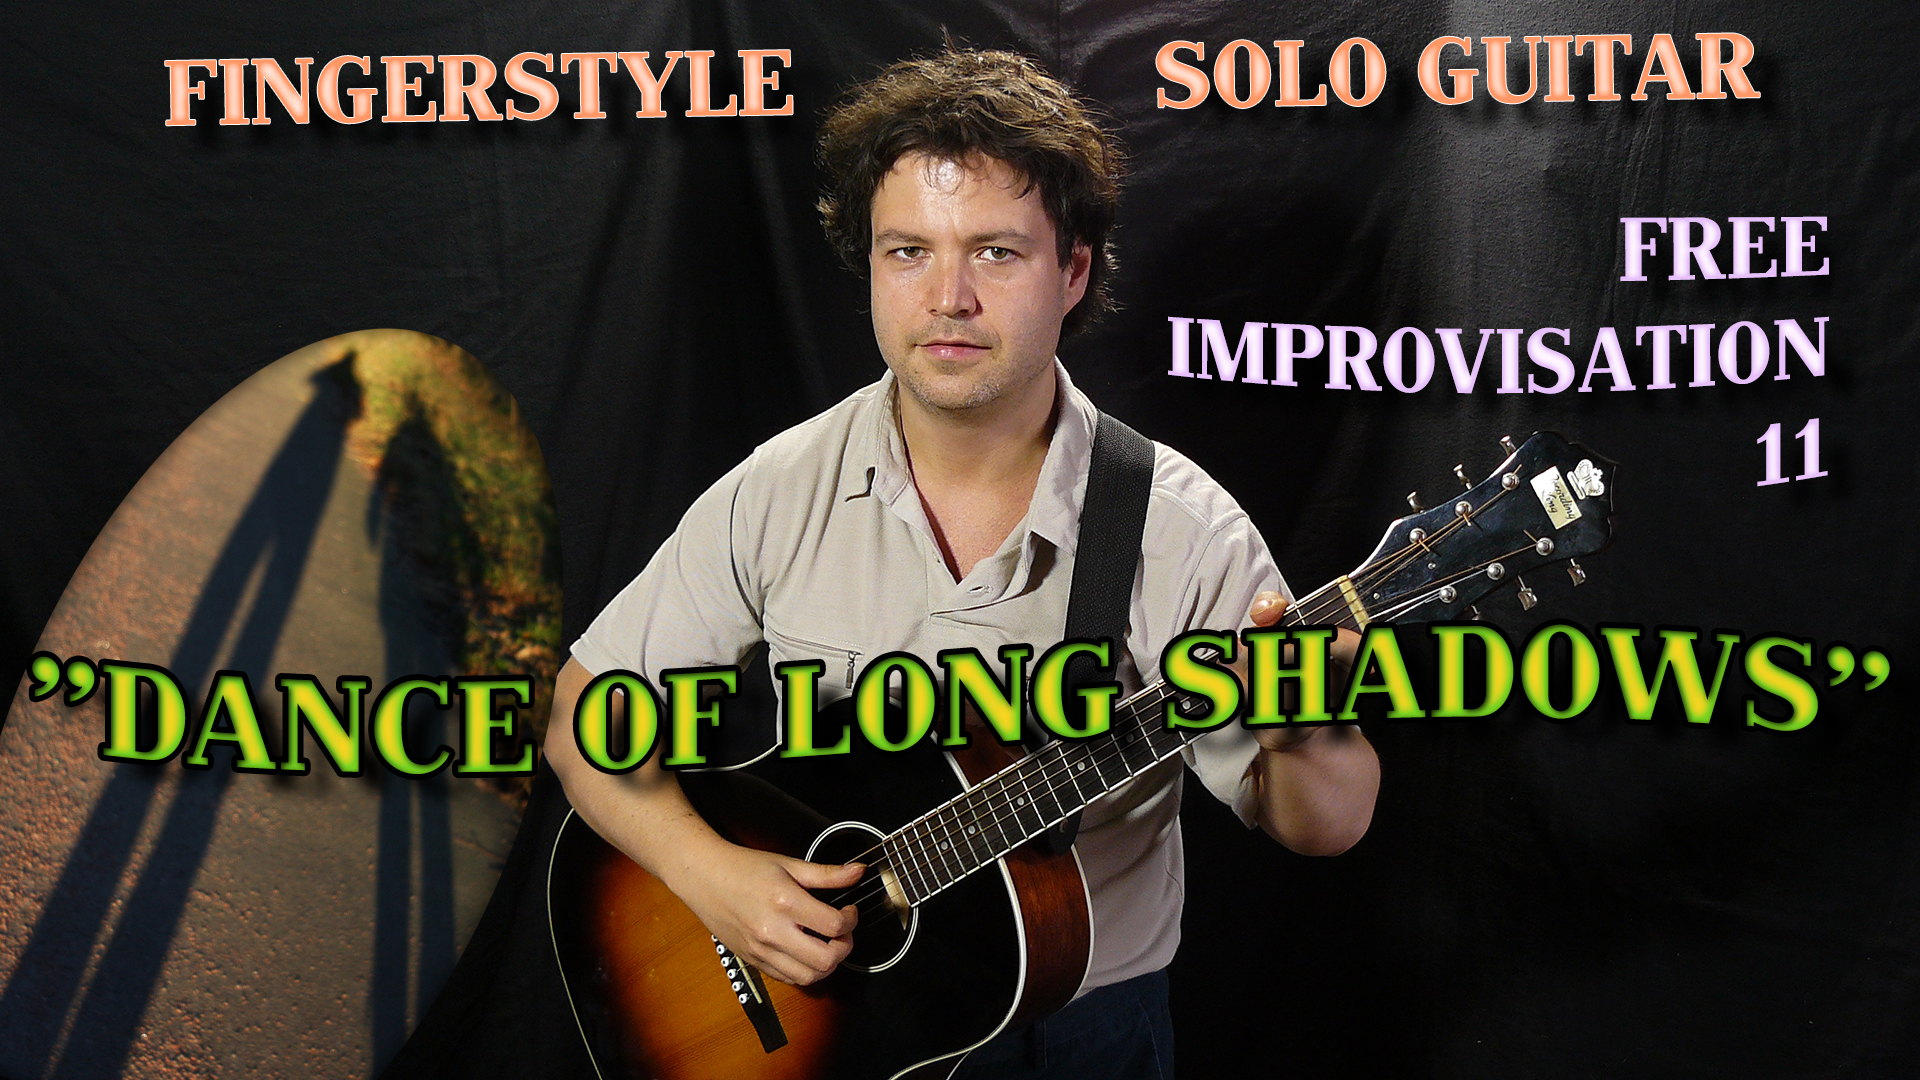 dance of long shadows - polyphonic solo acoustic jazz guitar